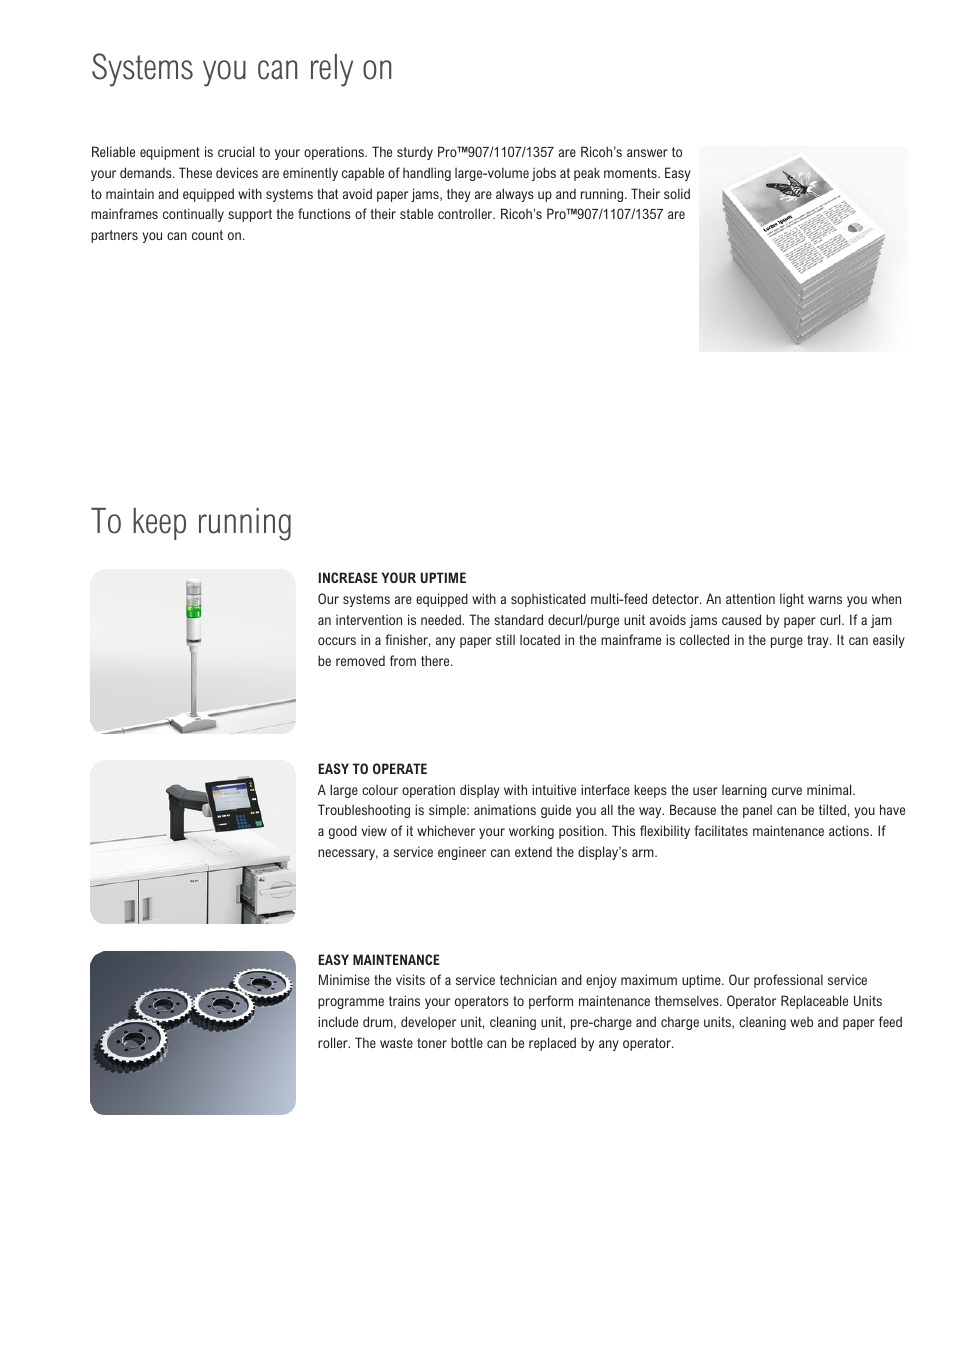 Systems you can rely on | Ricoh 907 User Manual | Page 5 / 12